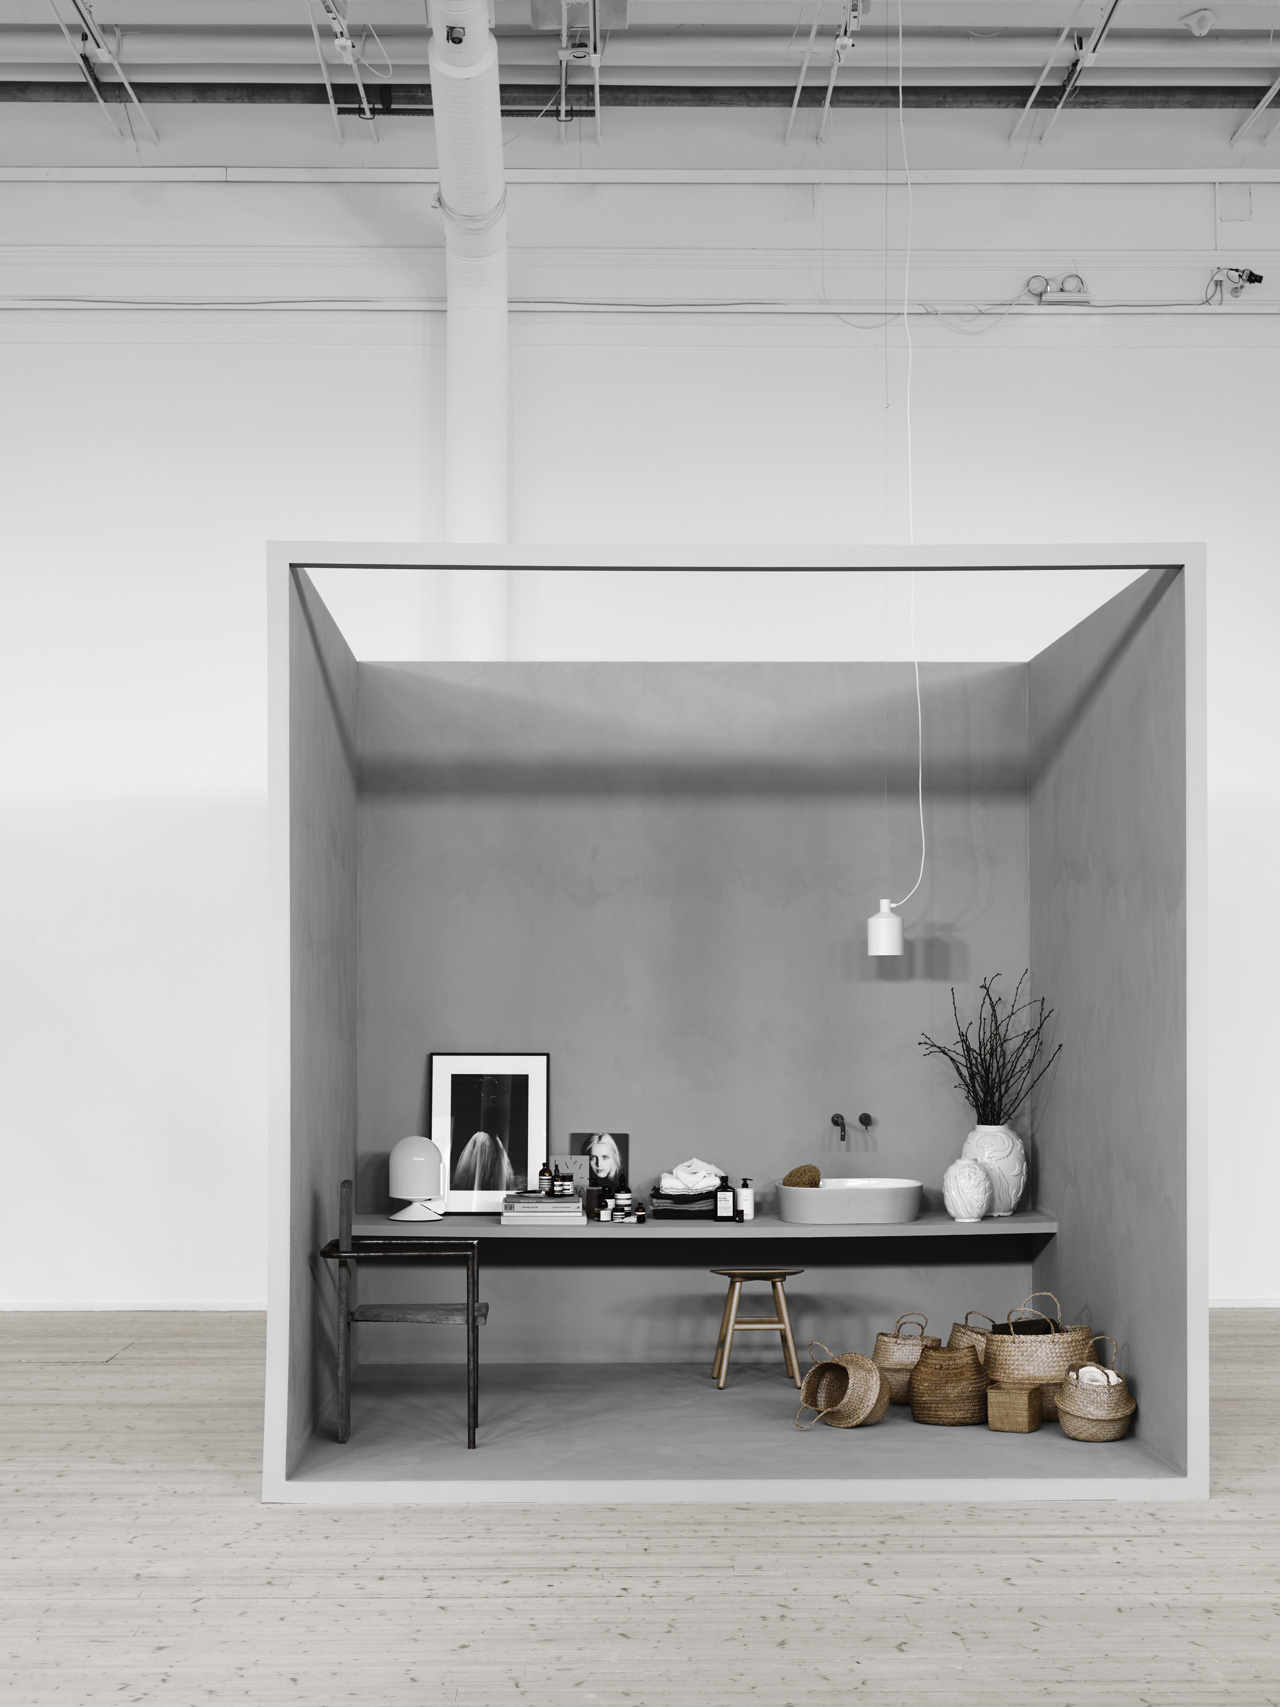 Residence Magazineawarded NOTE DESIGN STUDIO asthe Designer of the Year In 2015 and during Stockholm Design Week 2016 an exhibition waspresented at the architecture museum ArkDes in Stockholm,curated by Lotta Agaton, one of Sweden's leading stylists.